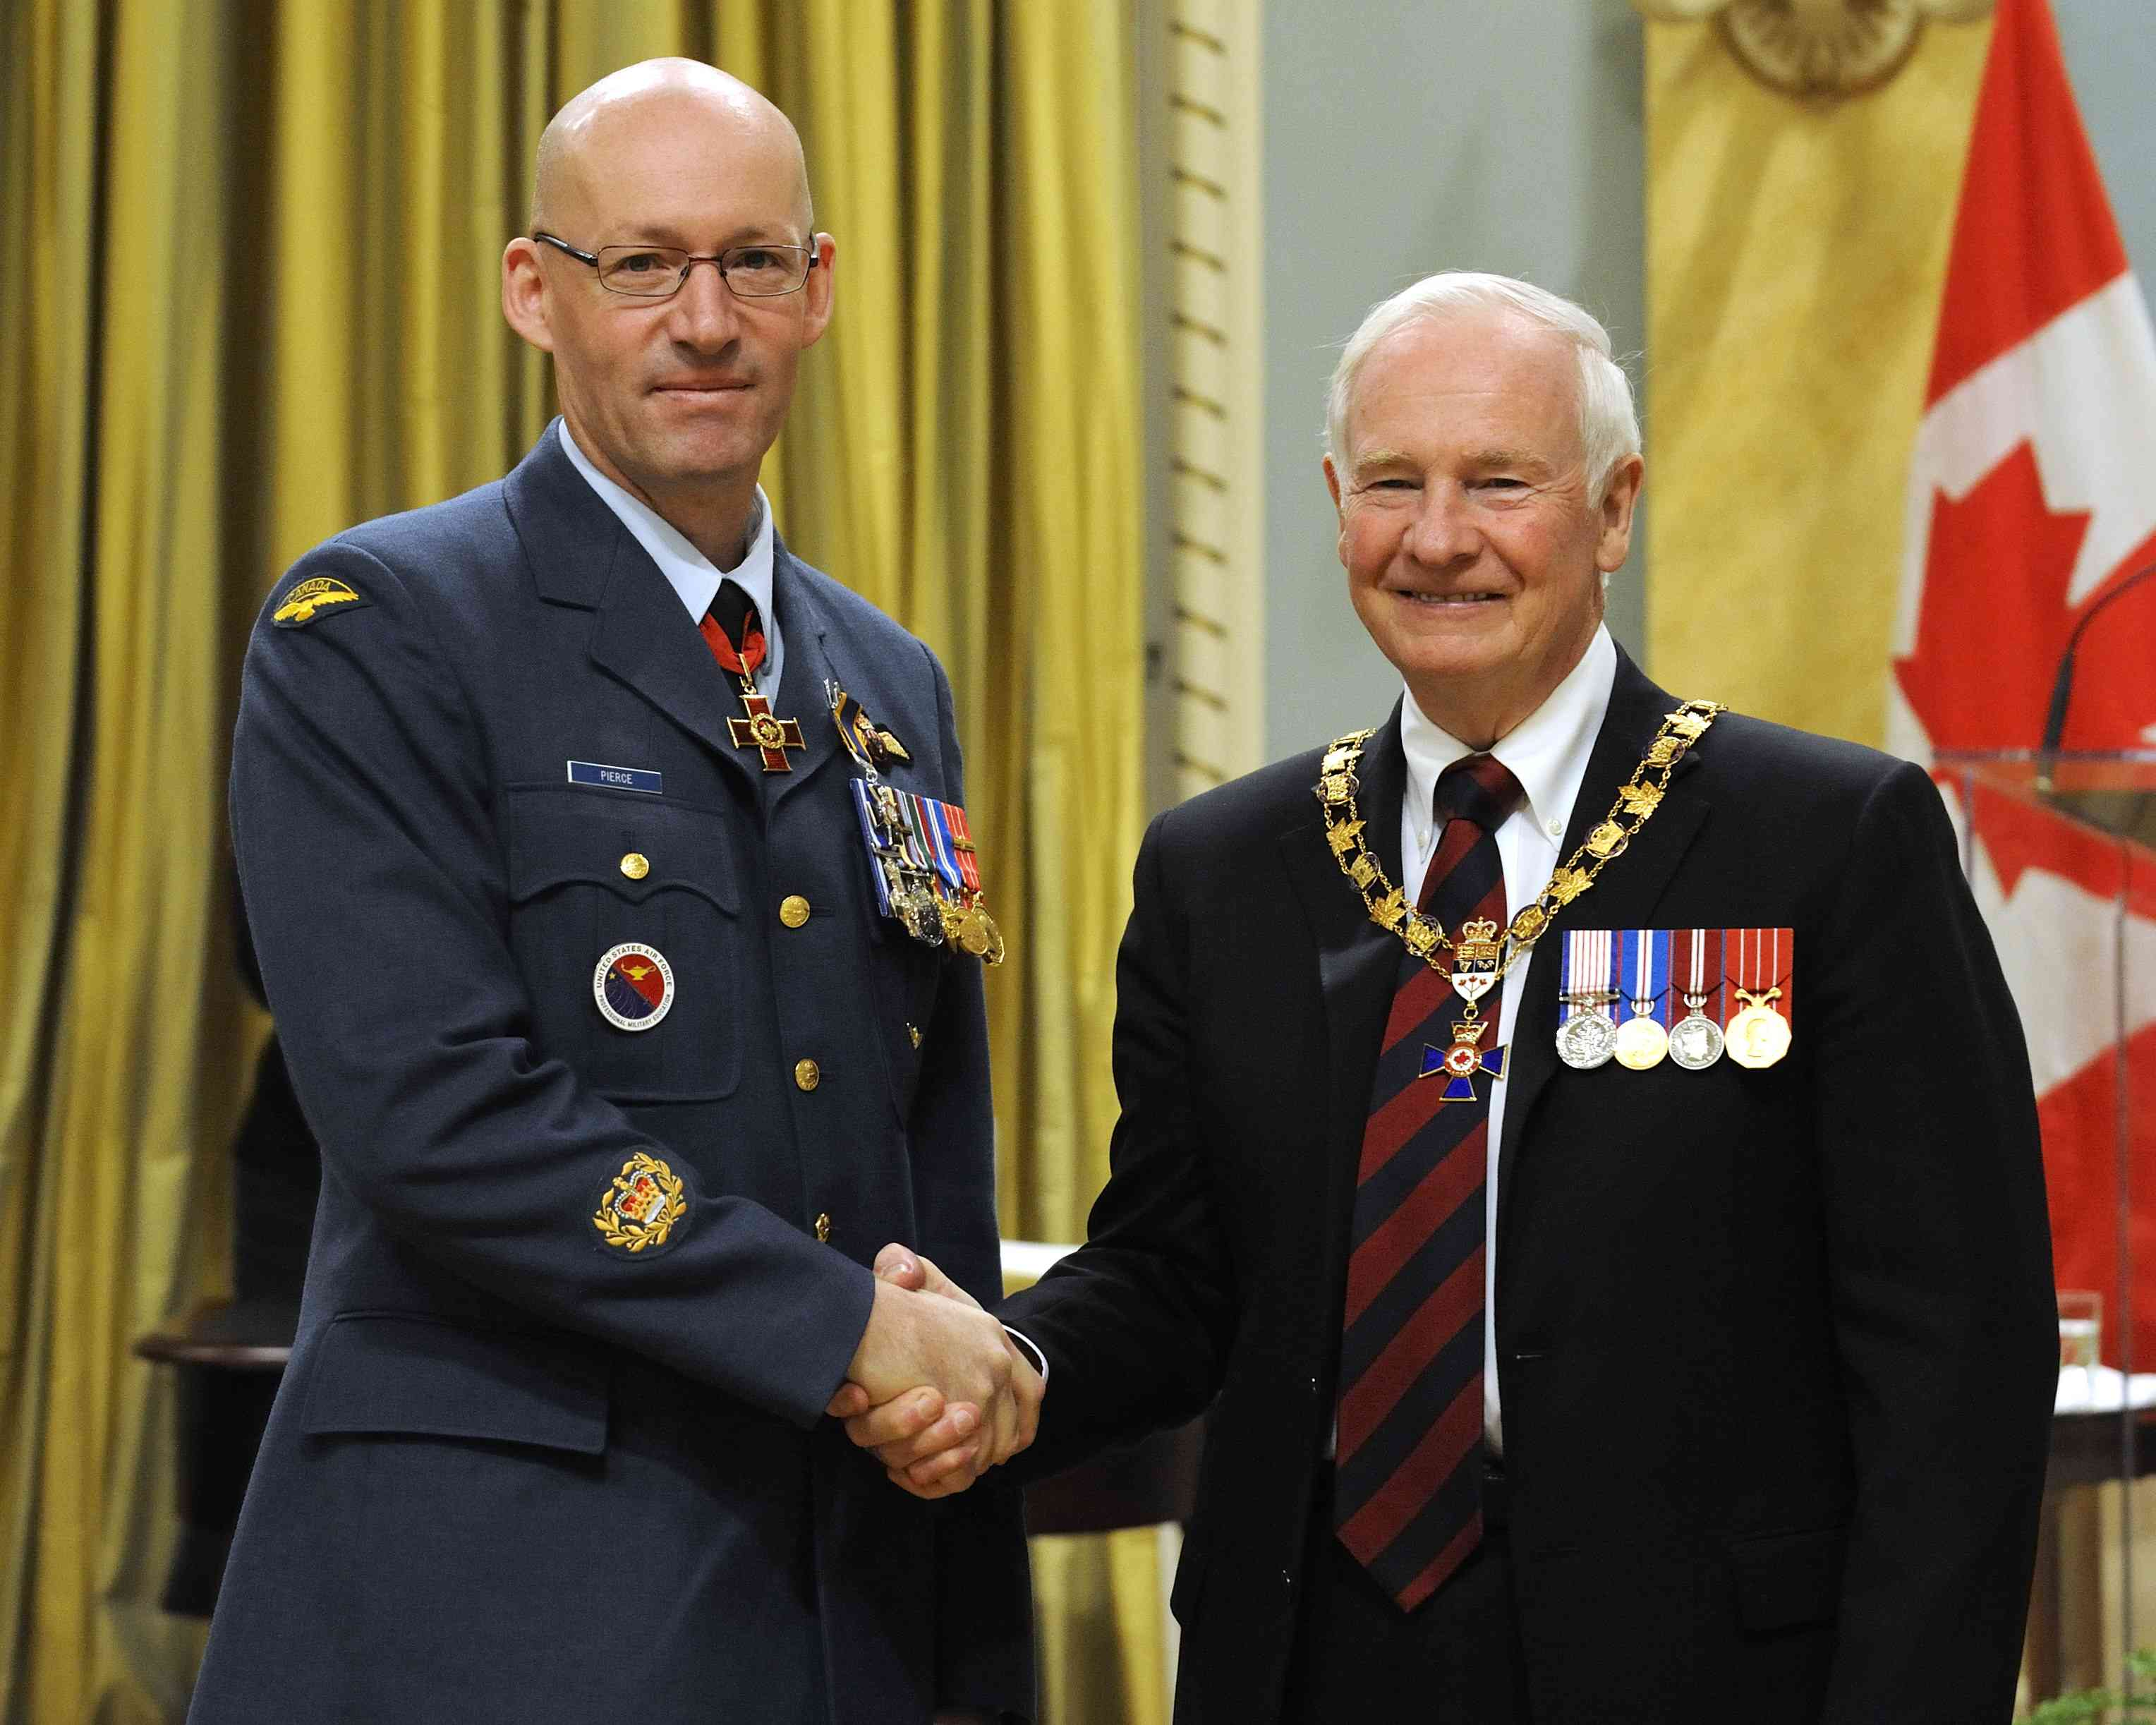 His Excellency presented the Order of Military Merit at the Member level (M.M.M.) to Master Warrant Officer Bryan Pierce, C.V., M.M.M., M.S.C., C.D, Canadian Forces School of Survival and Aeromedical Training, Winnipeg, Man.